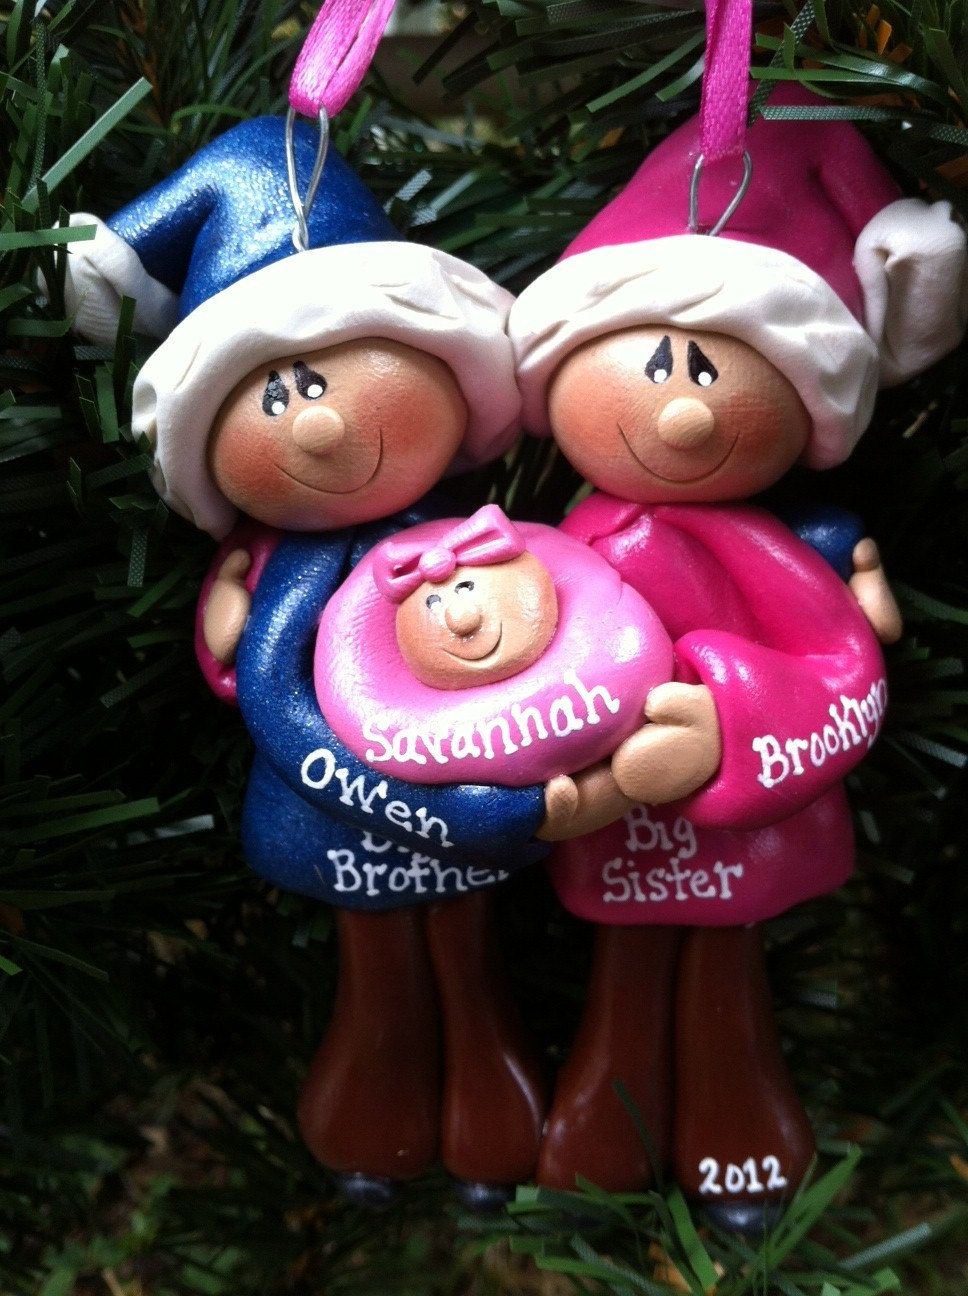 Christmas ornament expecting baby - Personalized Big Brother Big Sister Little Brother Little Sister With Baby Christmas Ornament